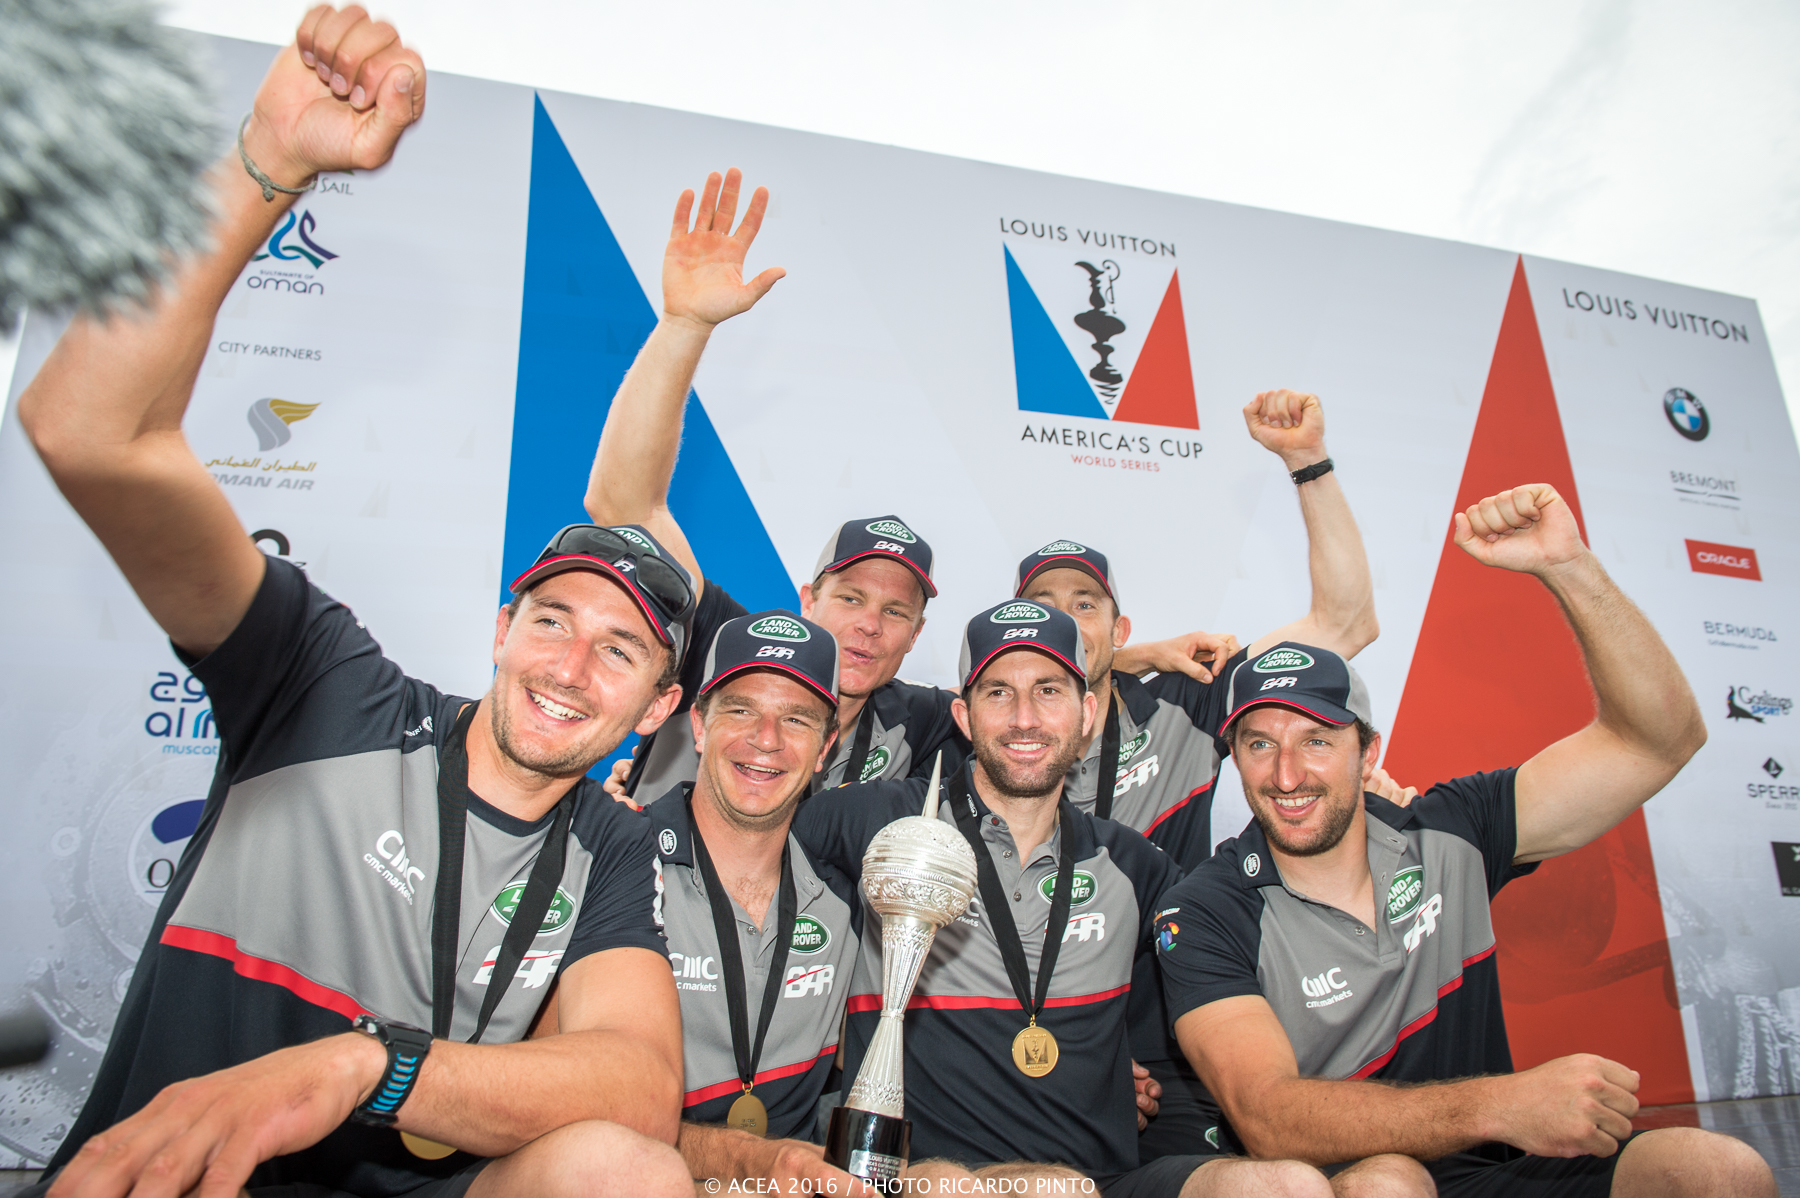 28/02/16 - Muscat (OMN) - 35th America's Cup Bermuda 2017 - Louis Vuitton America's Cup World Series Oman - Racing Day 2 - Prize Giving Ceremony